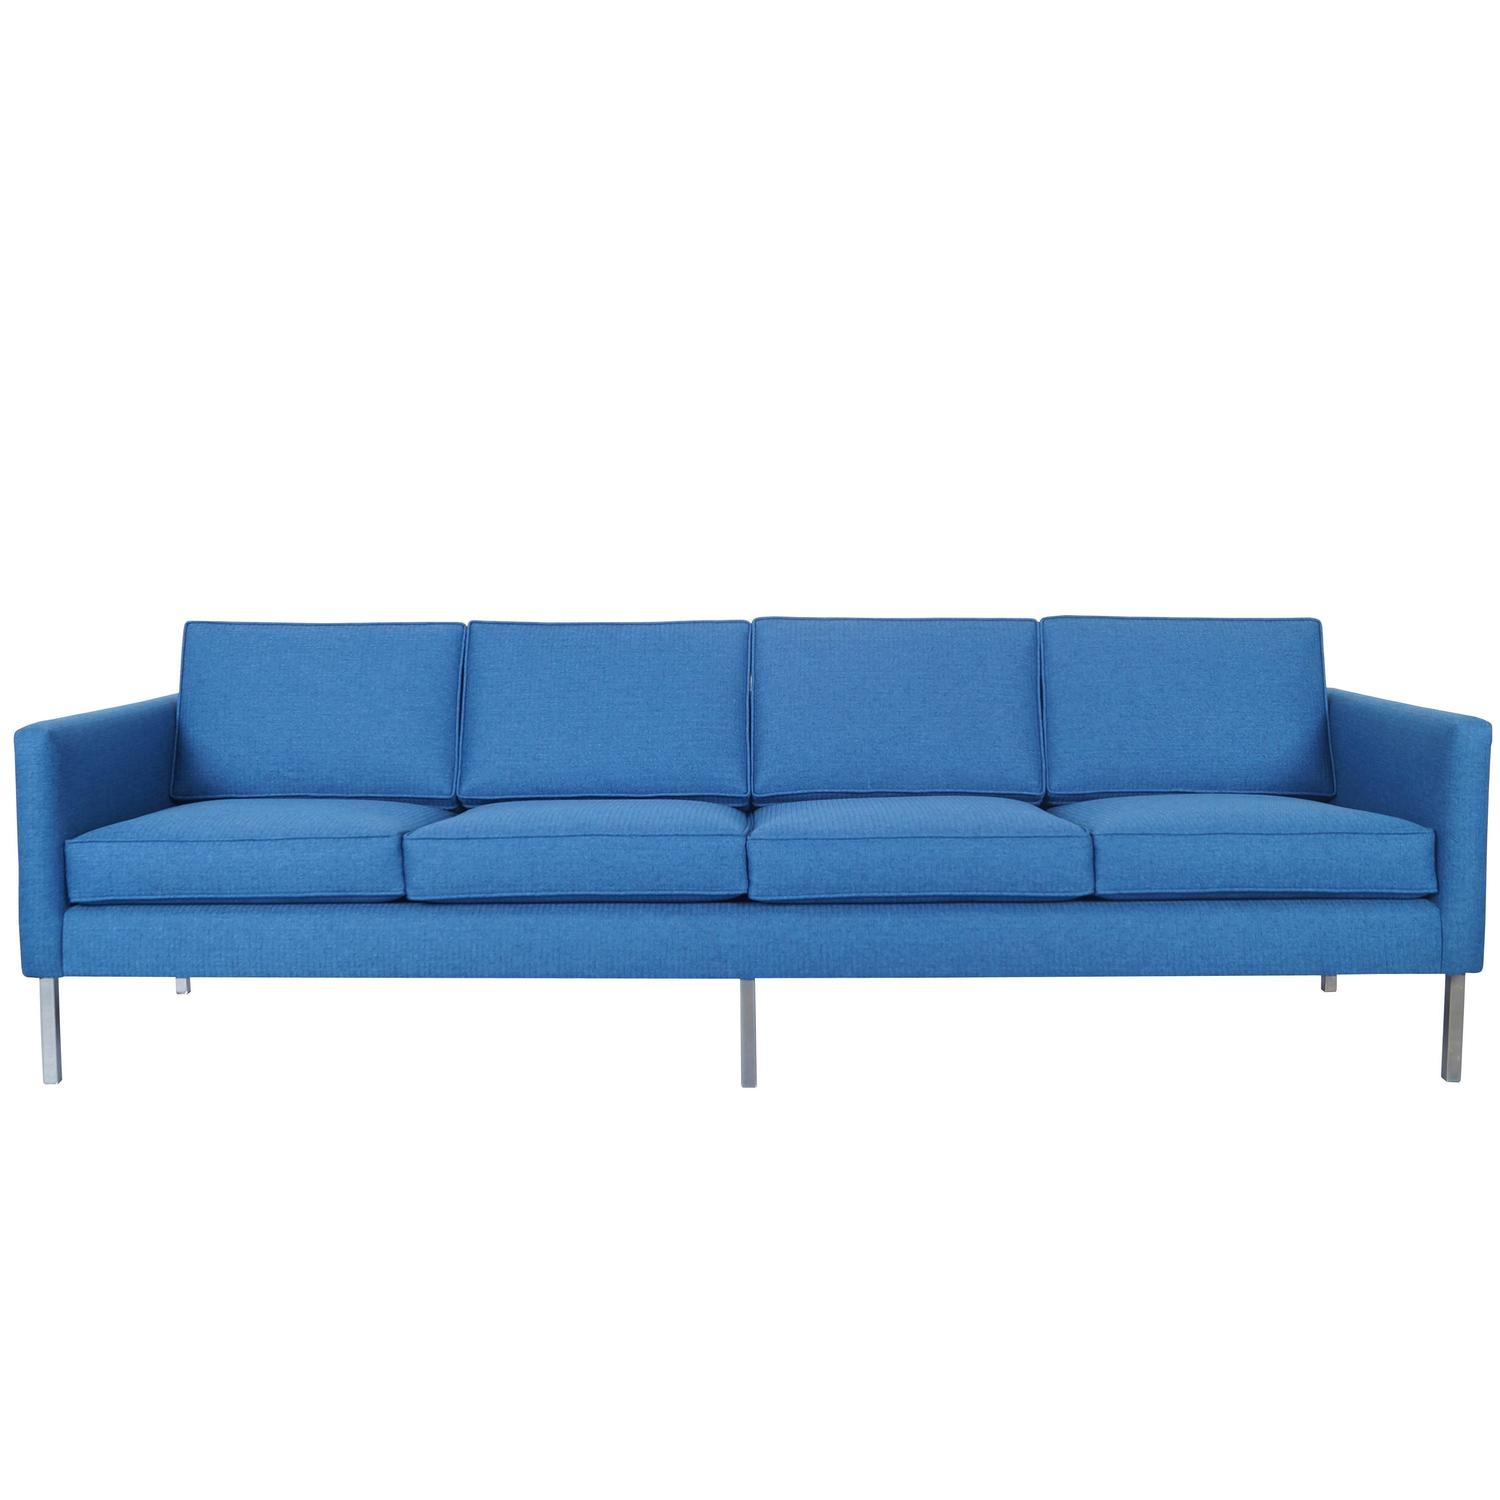 Mid century modern chrome sofa at 1stdibs for Mid century modern sofas